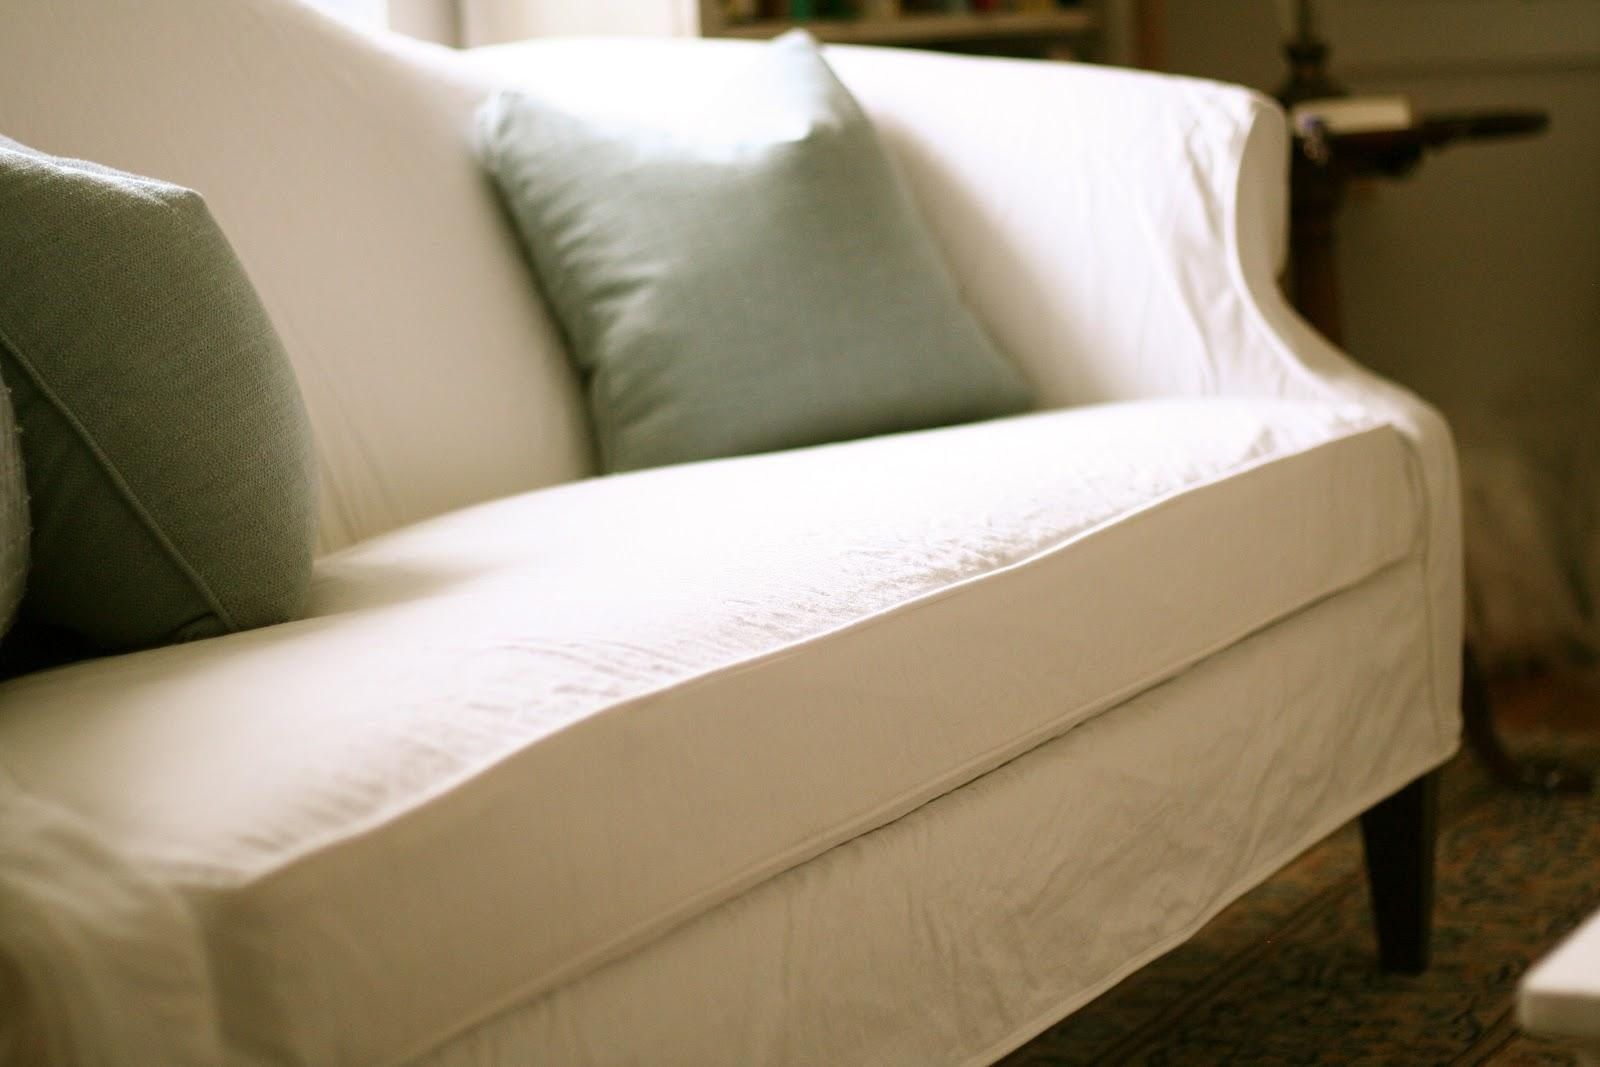 Custom Slipcoversshelley: White Camel Back Couch Intended For Camel Back Sofa Slipcovers (Image 7 of 20)